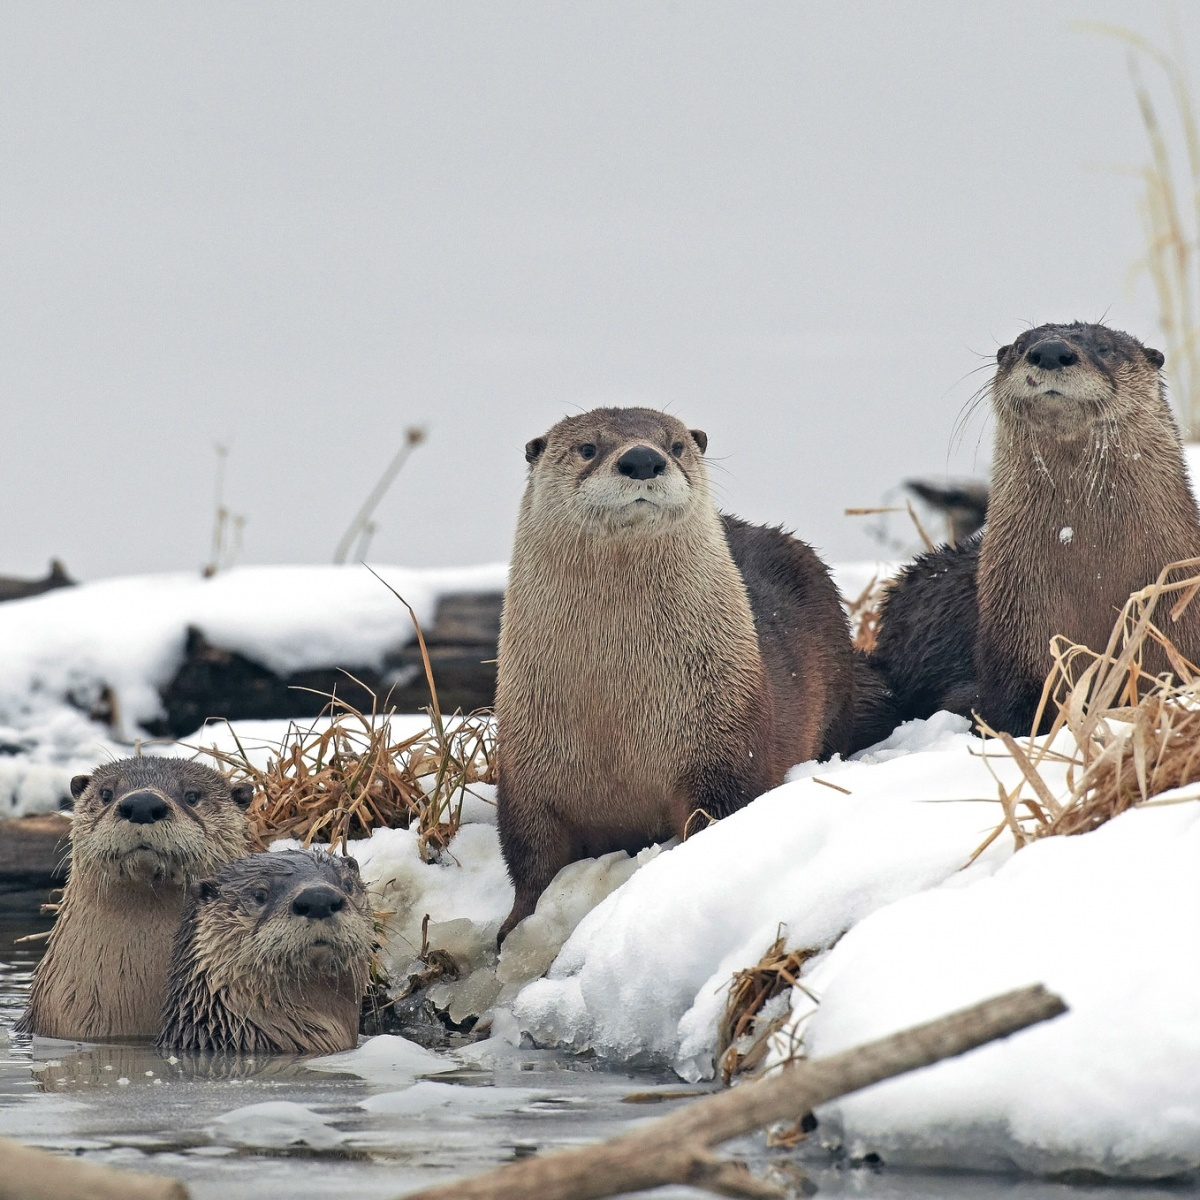 Four furry, gray otters stand on the snowy bank of an icy river.